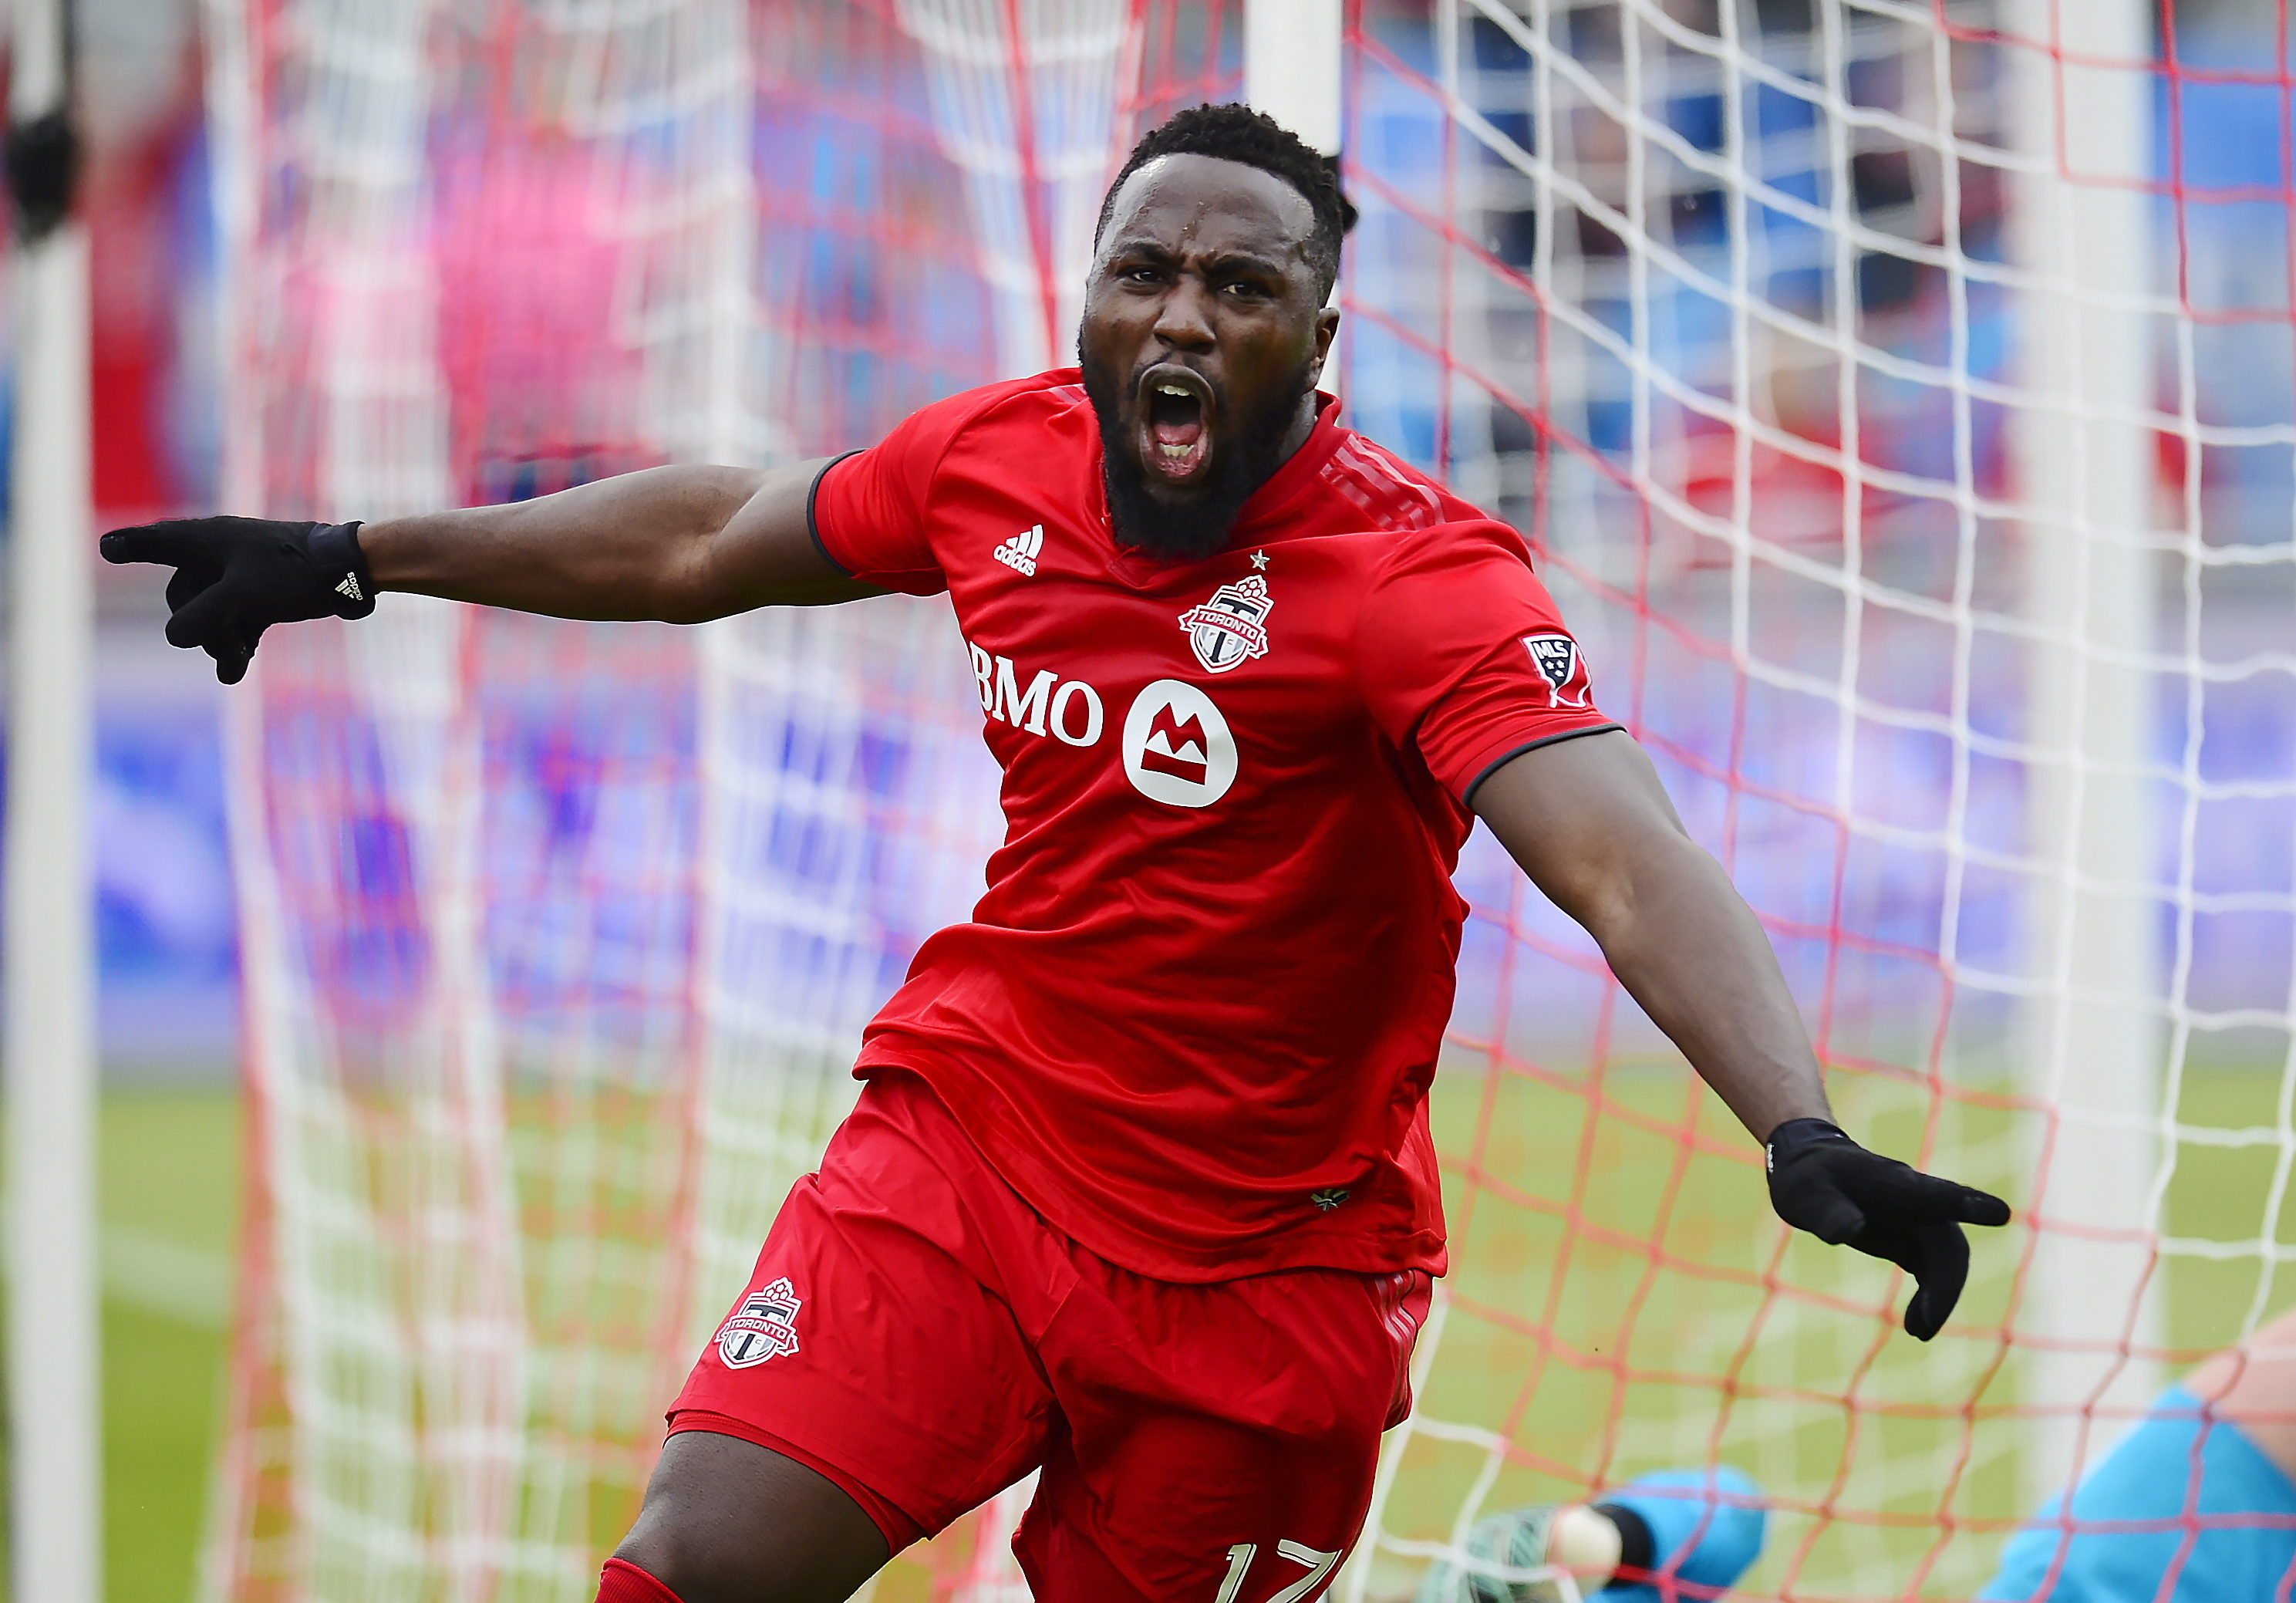 Osorio helps Toronto FC to 2-2 tie with Chicago Fire